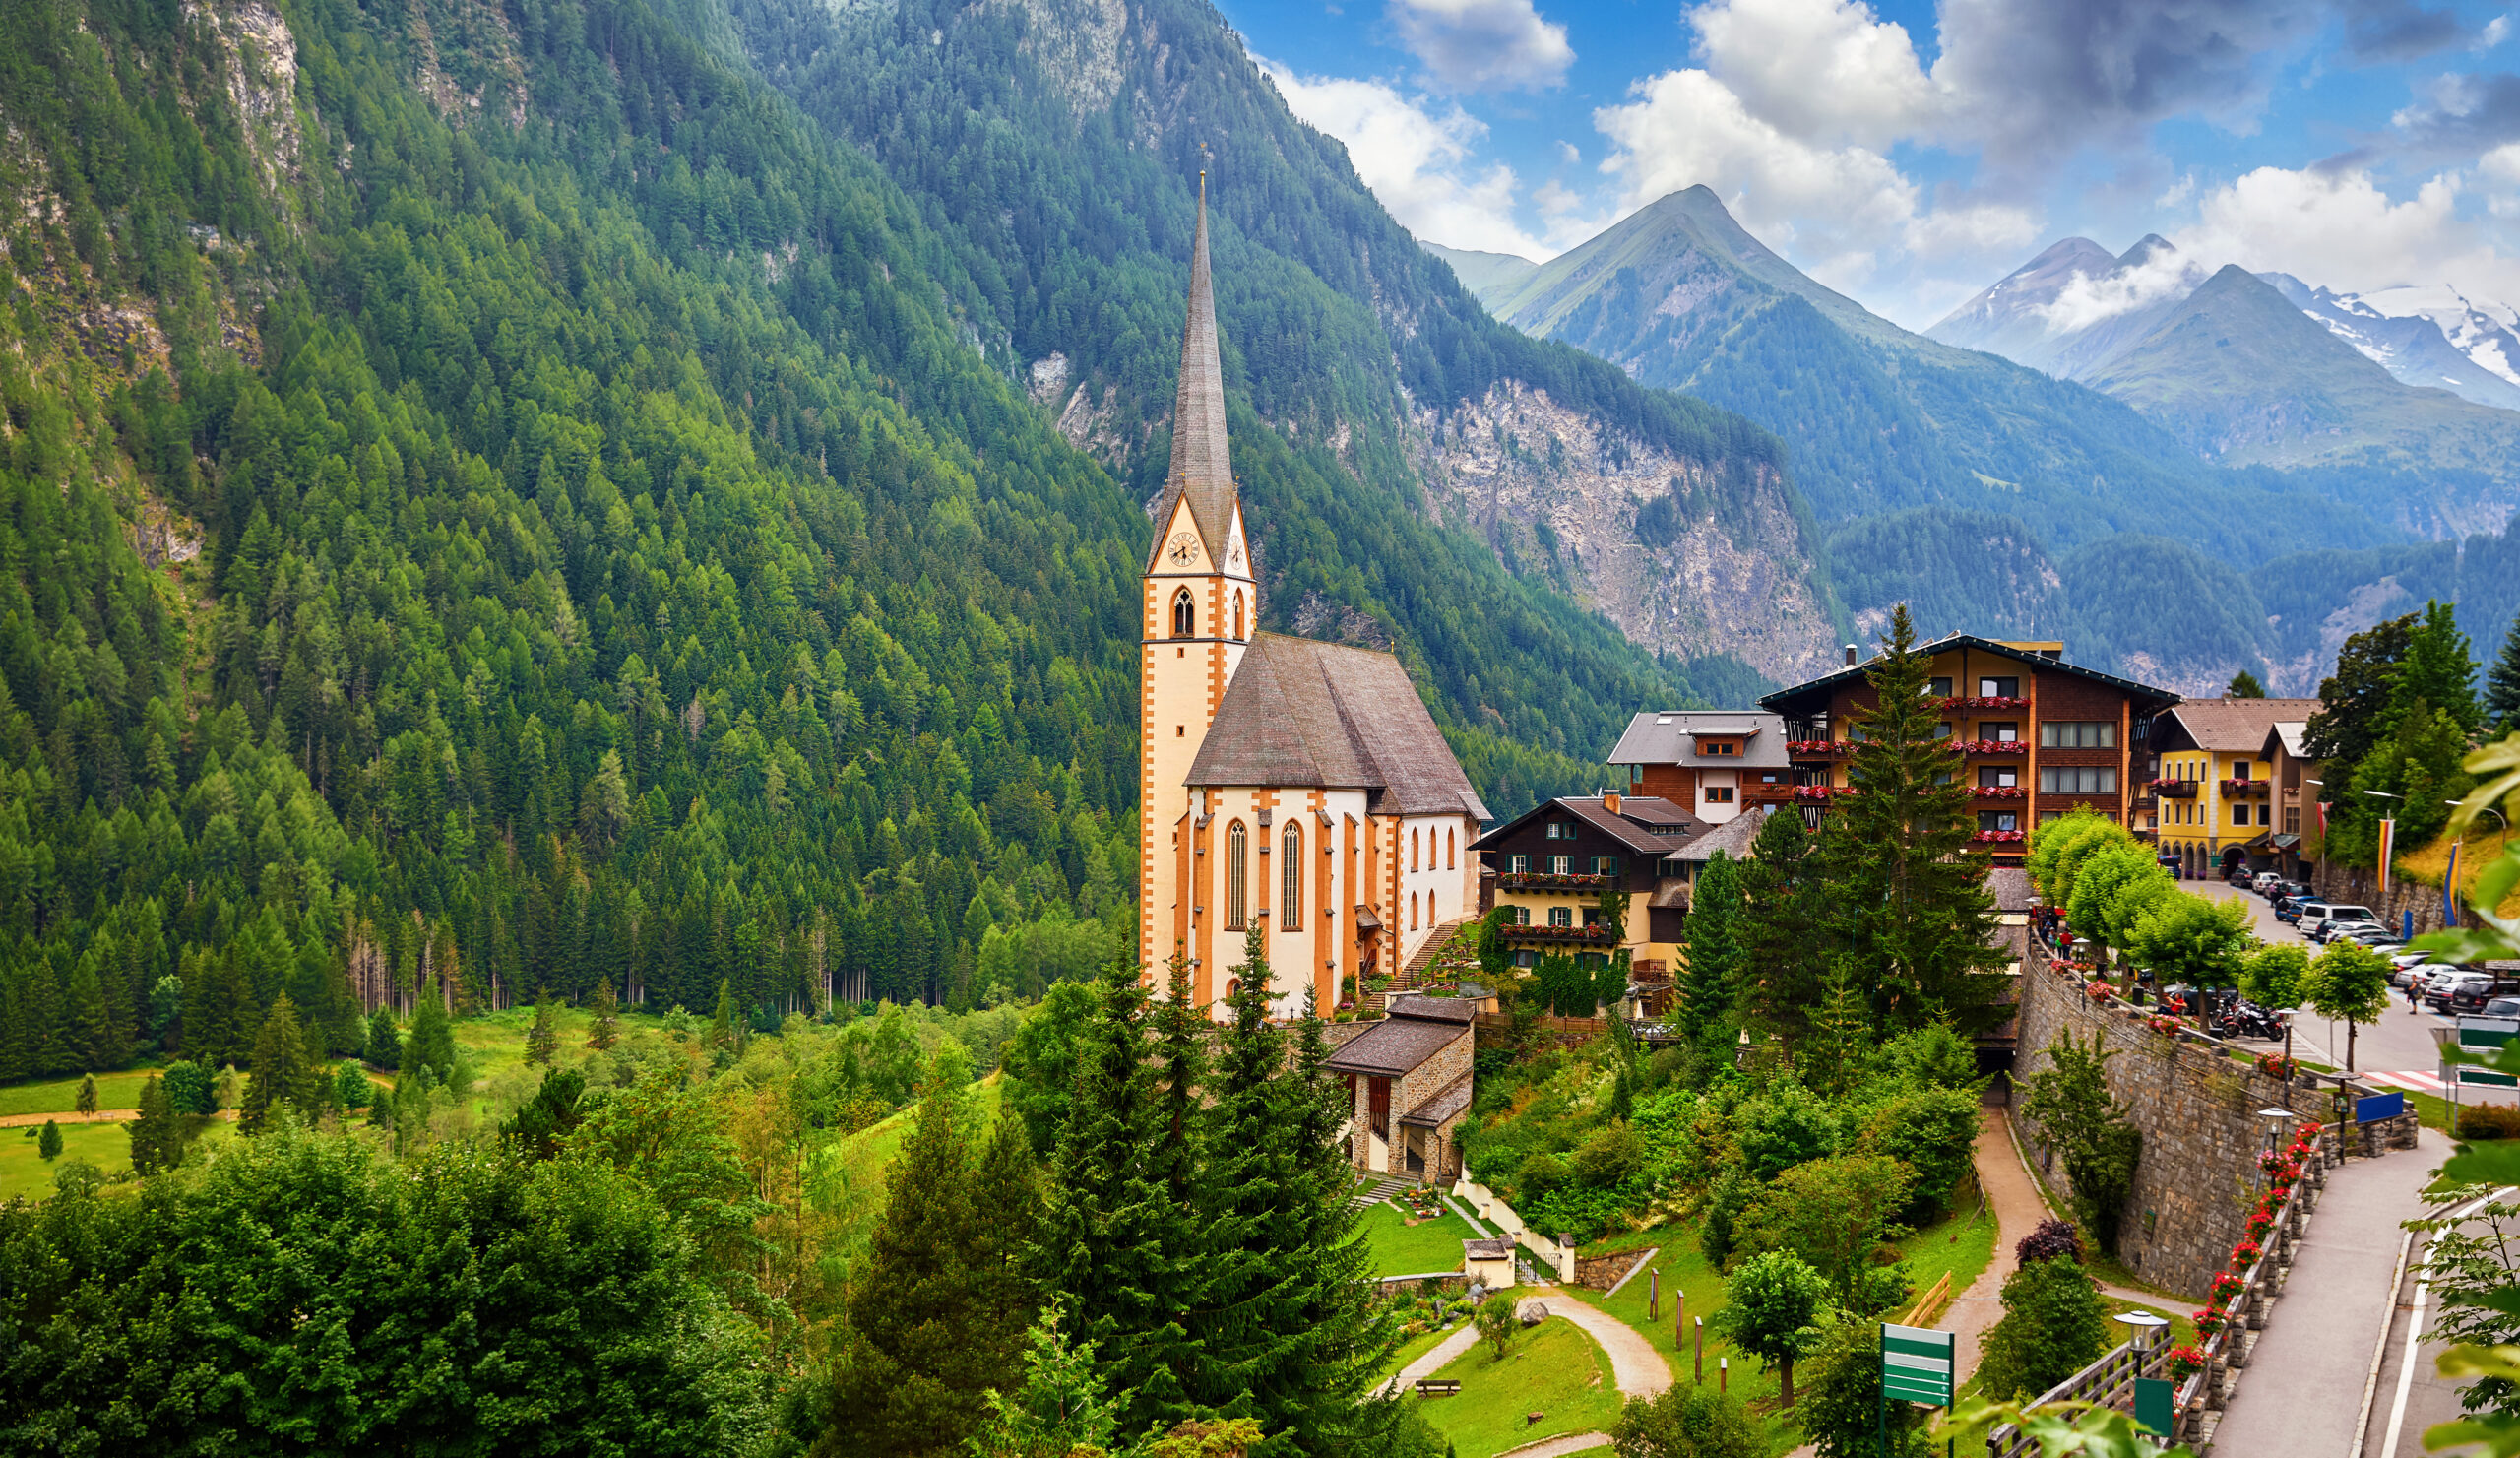 Photo of the small Austrian town of Heliligenblut featuring an ariel view of St. Vincent's Church with Grossglockner Mountain in the background.